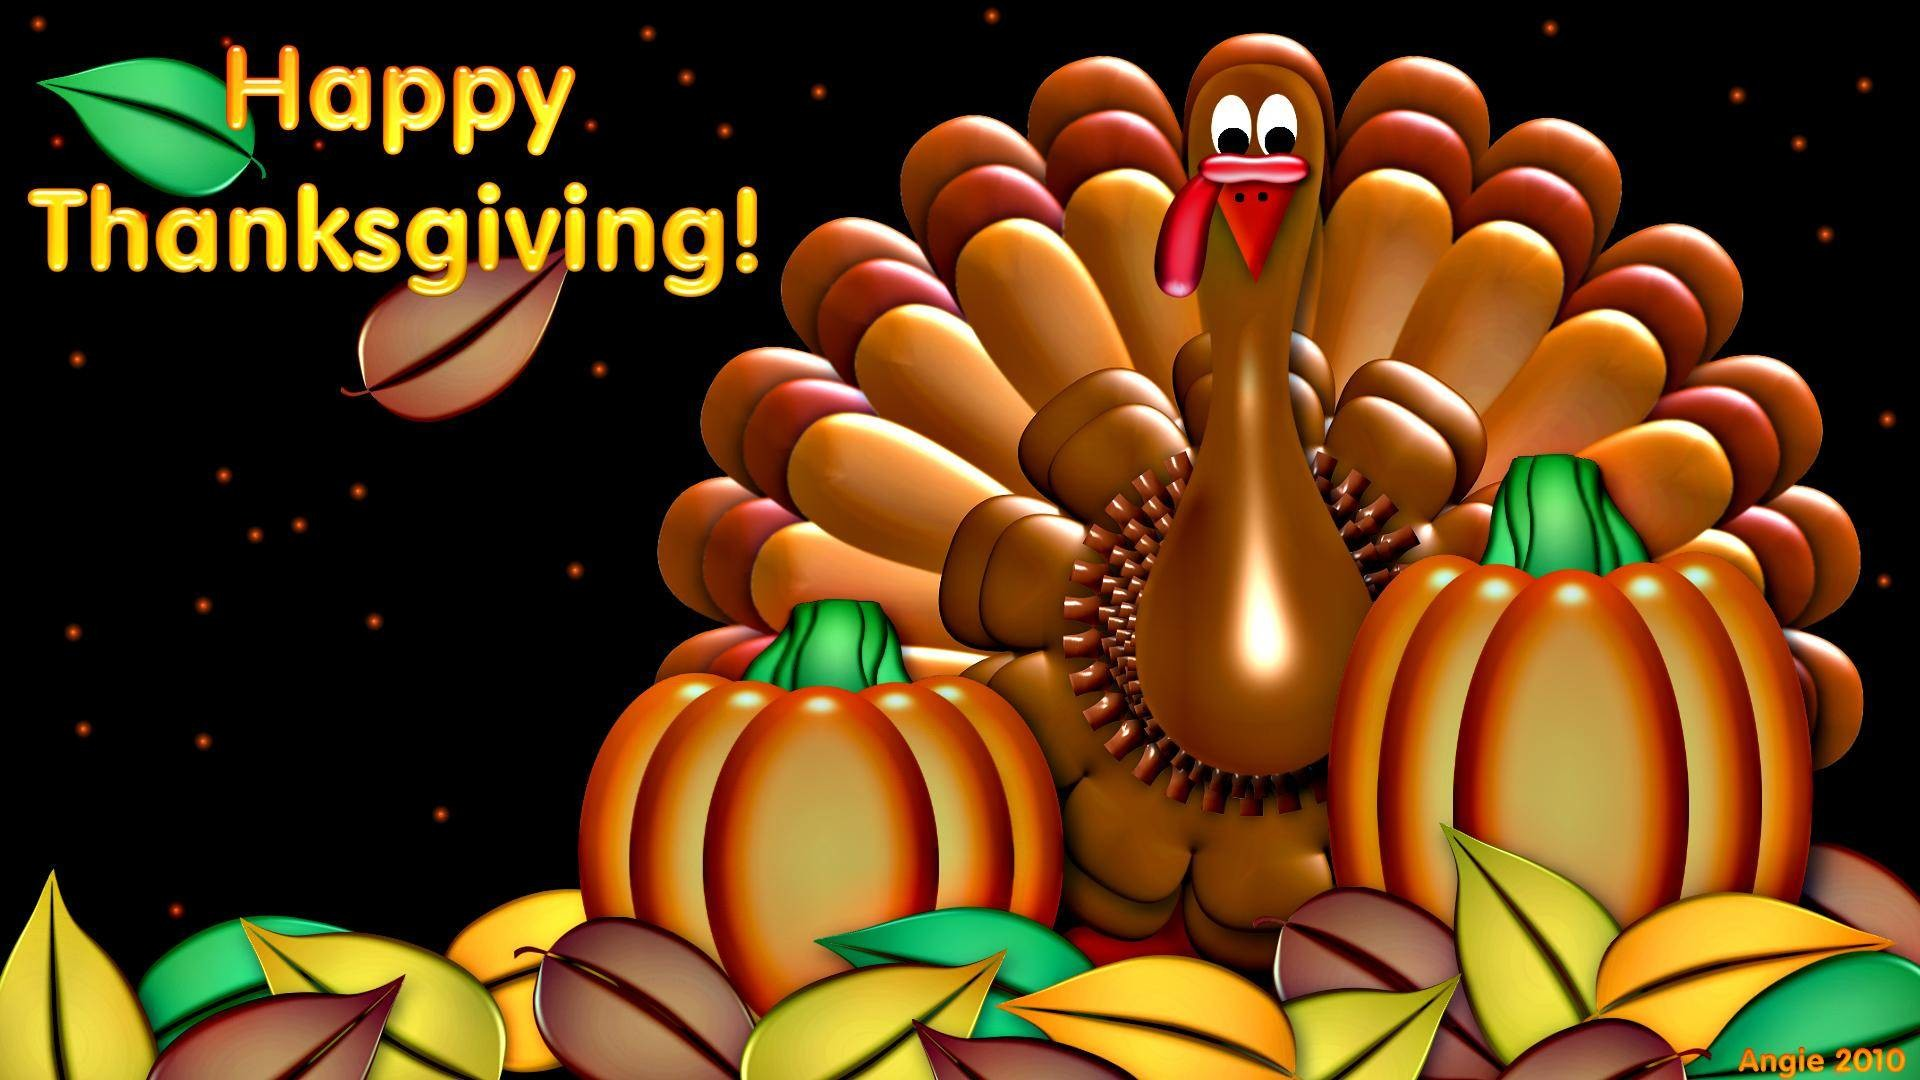 new thanksgiving wallpaper backgrounds